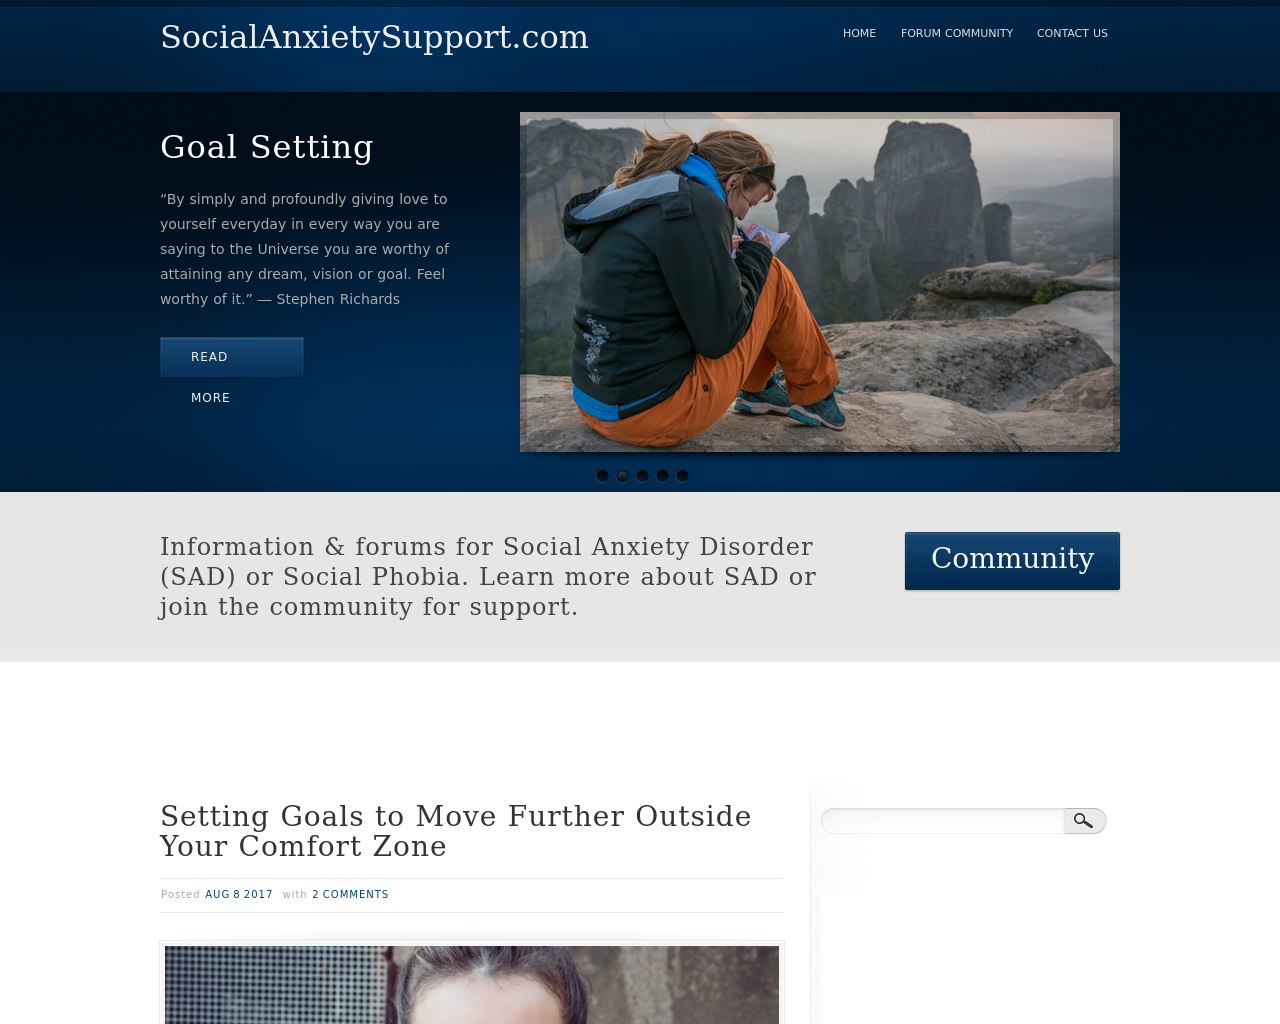 Social-Anxiety-Support-Advertising-Reviews-Pricing